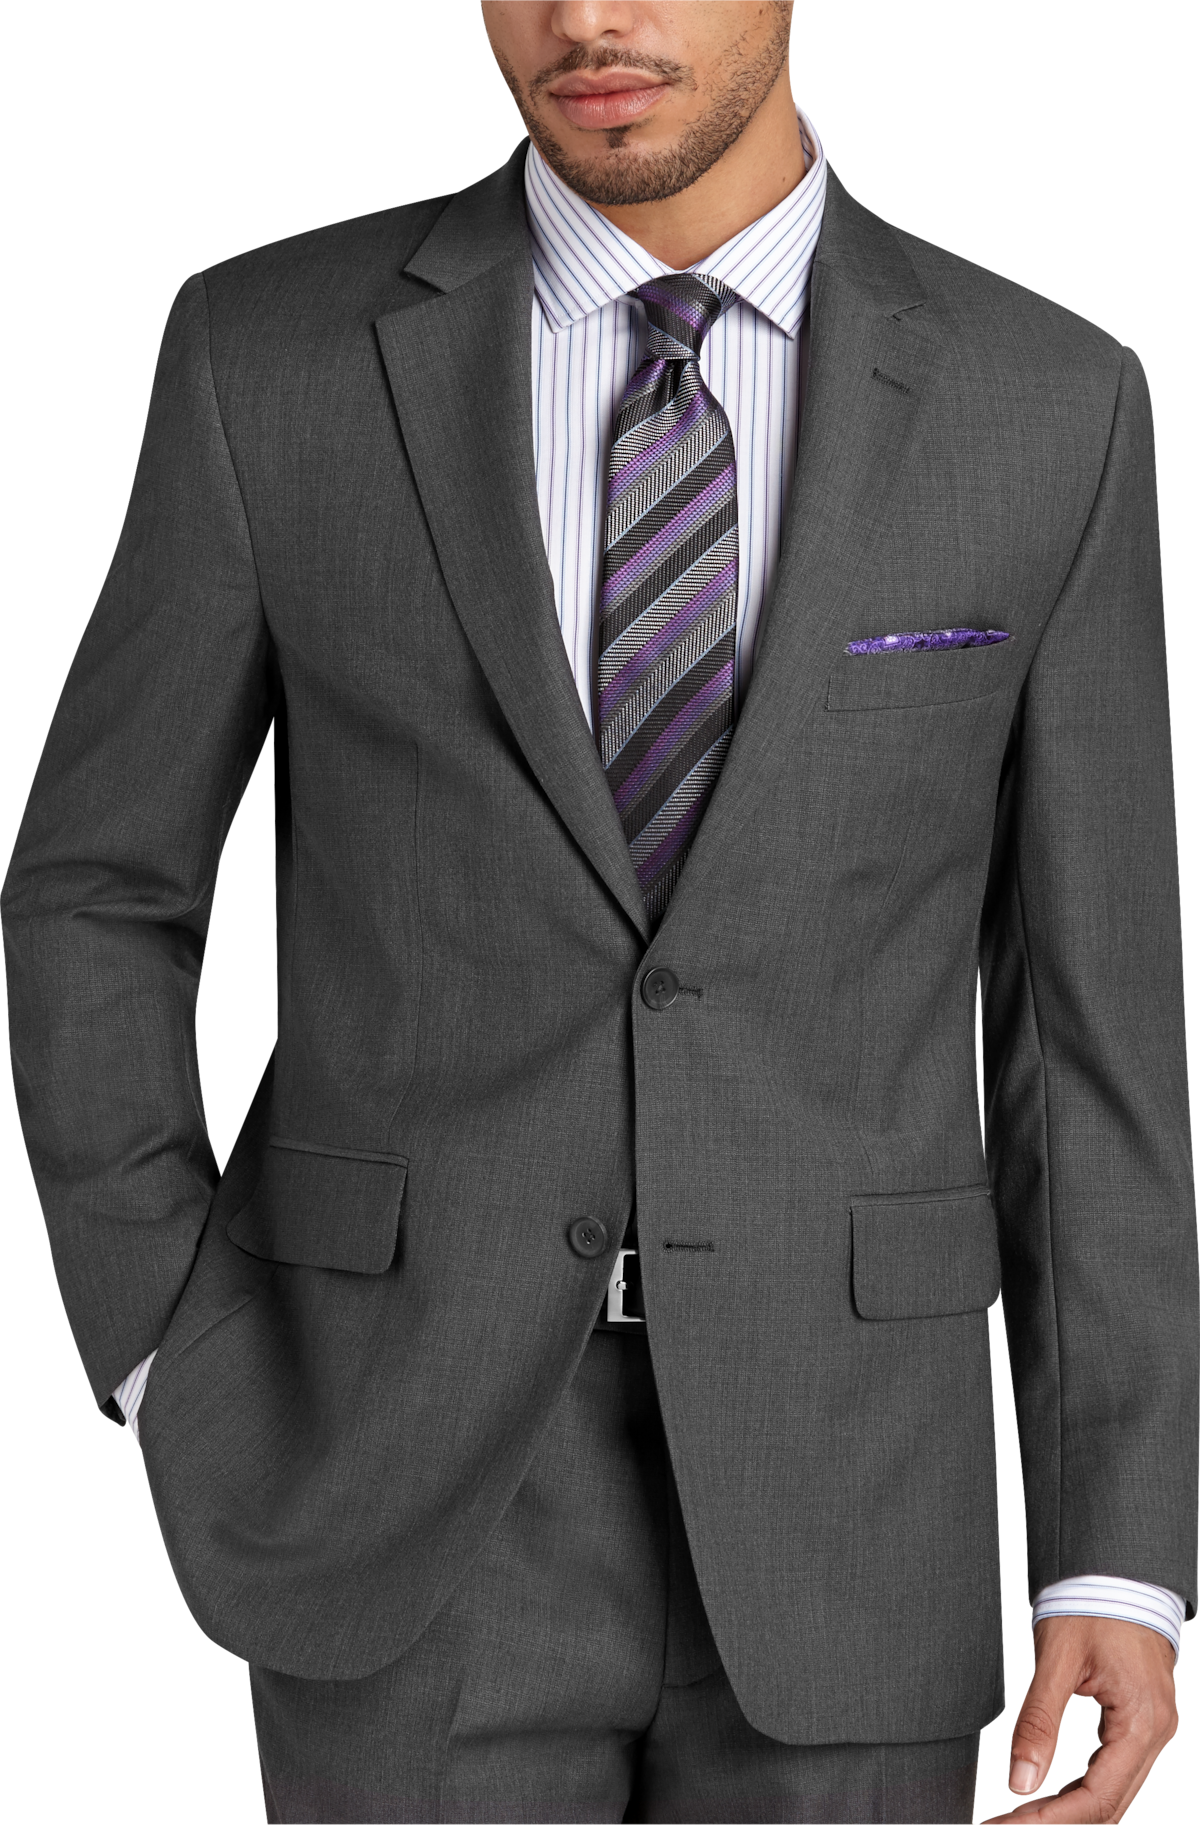 Find great deals on eBay for mens wearhouse suits. Shop with confidence. Skip to main content. eBay: Mens Wearhouse suit cover. or Best Offer. Free Shipping. Mens Wearhouse suit cover. Brand New. $ or Best Offer. Free Shipping. New Listing The Mens Wearhouse Men's Striped Black Blazer suit Jacket Sport Coats Pre-Owned.